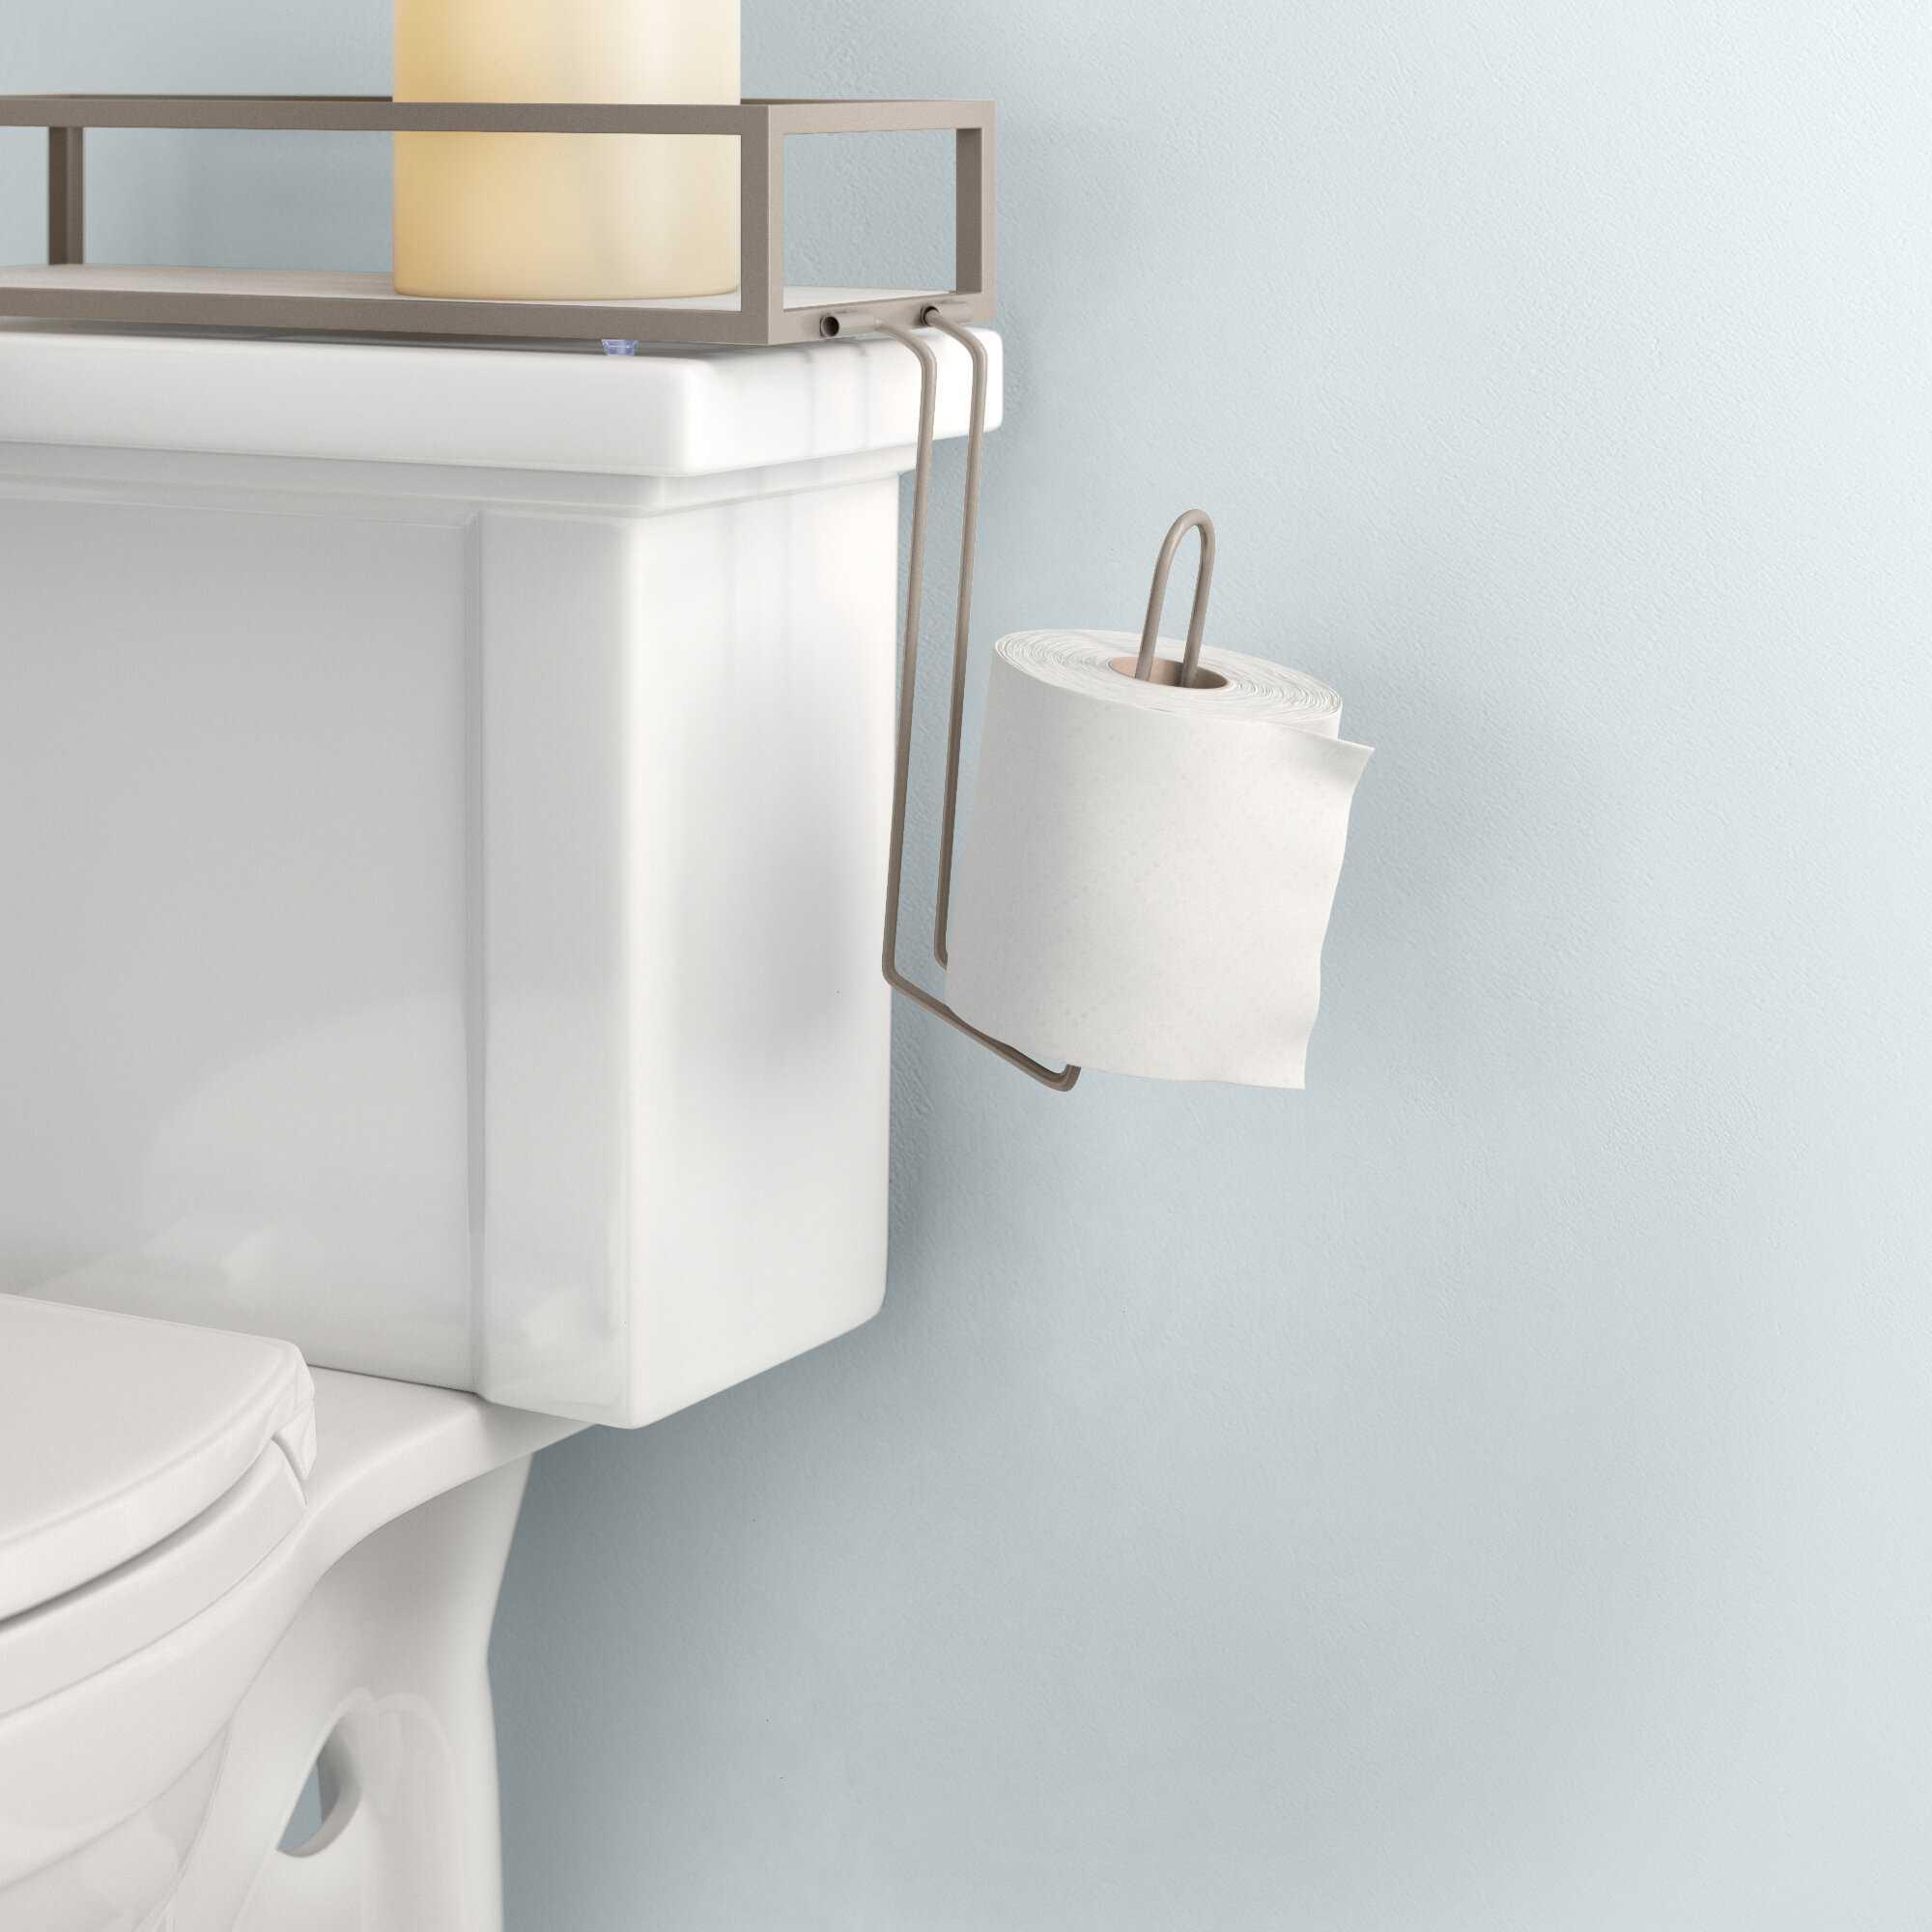 Dotted Line Darby Toilet Tank Mount Storage Toilet Paper Holder Reviews Wayfair